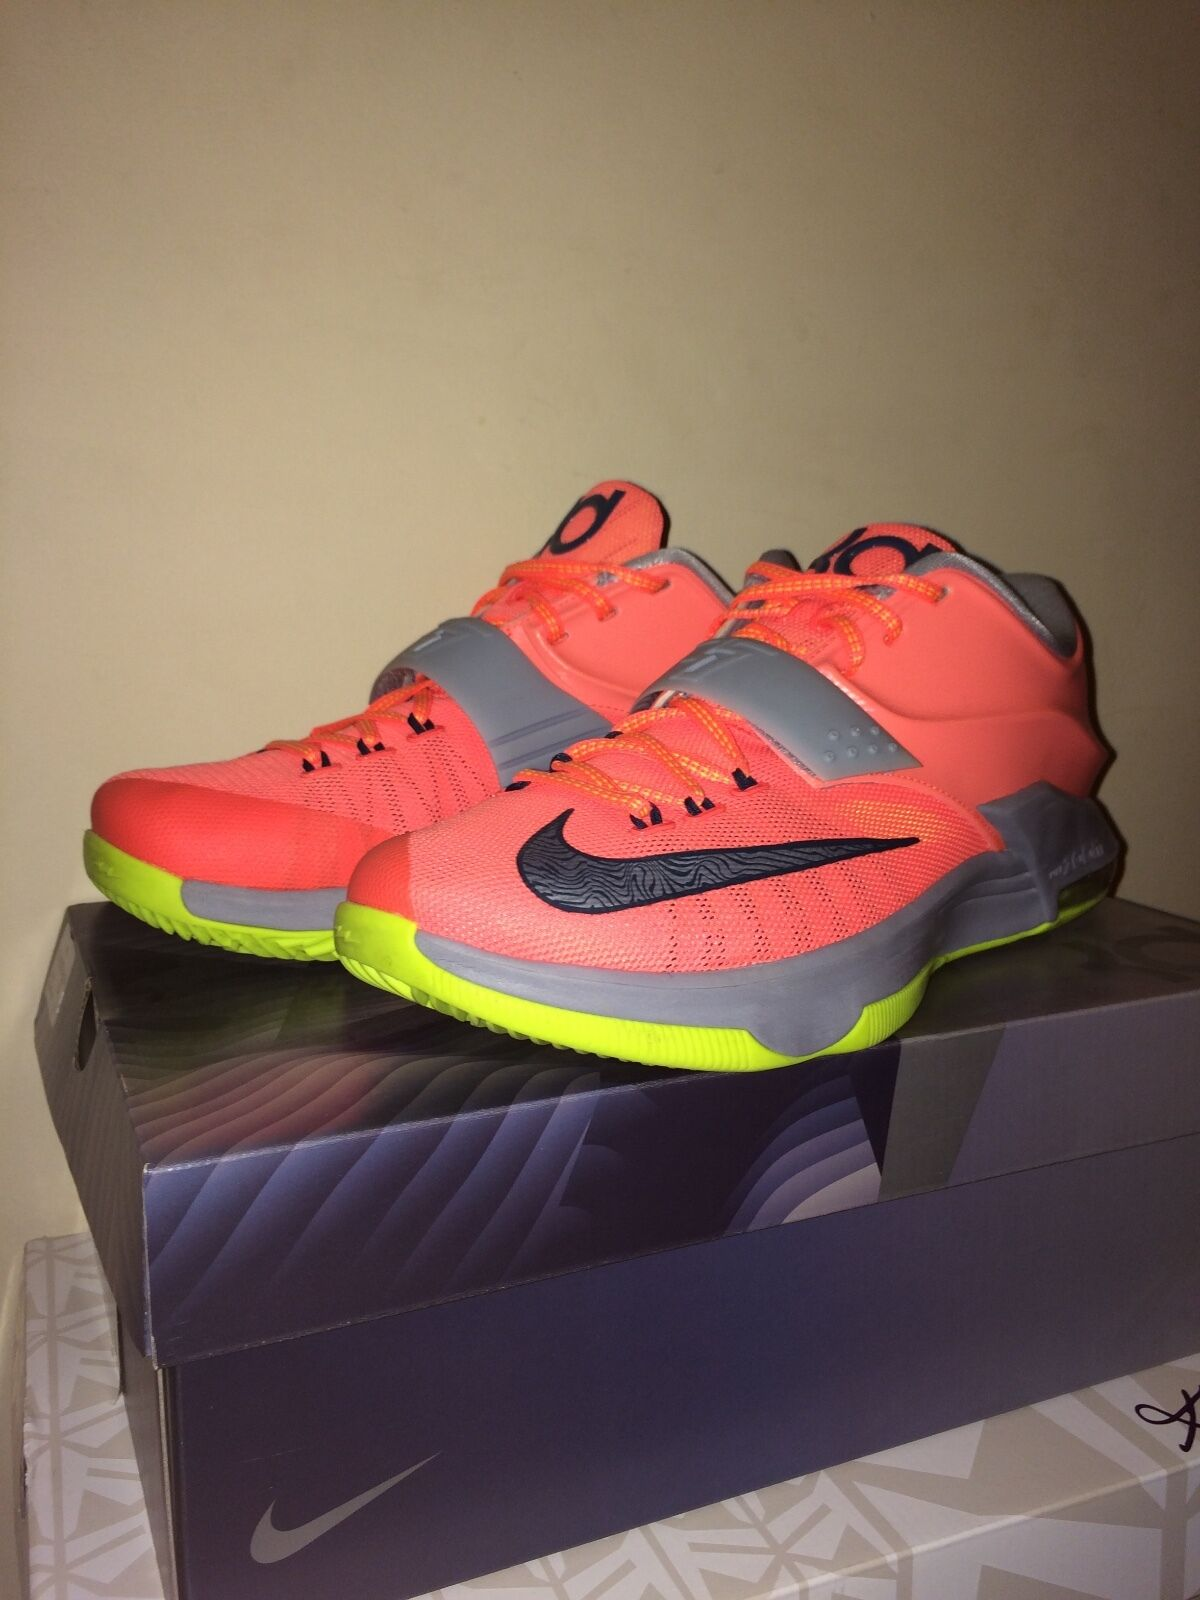 Uomo Nike KD 7 3500 Degrees (brght mng/spc bl-lt mgnt gry) Size: 9.5 653996-840